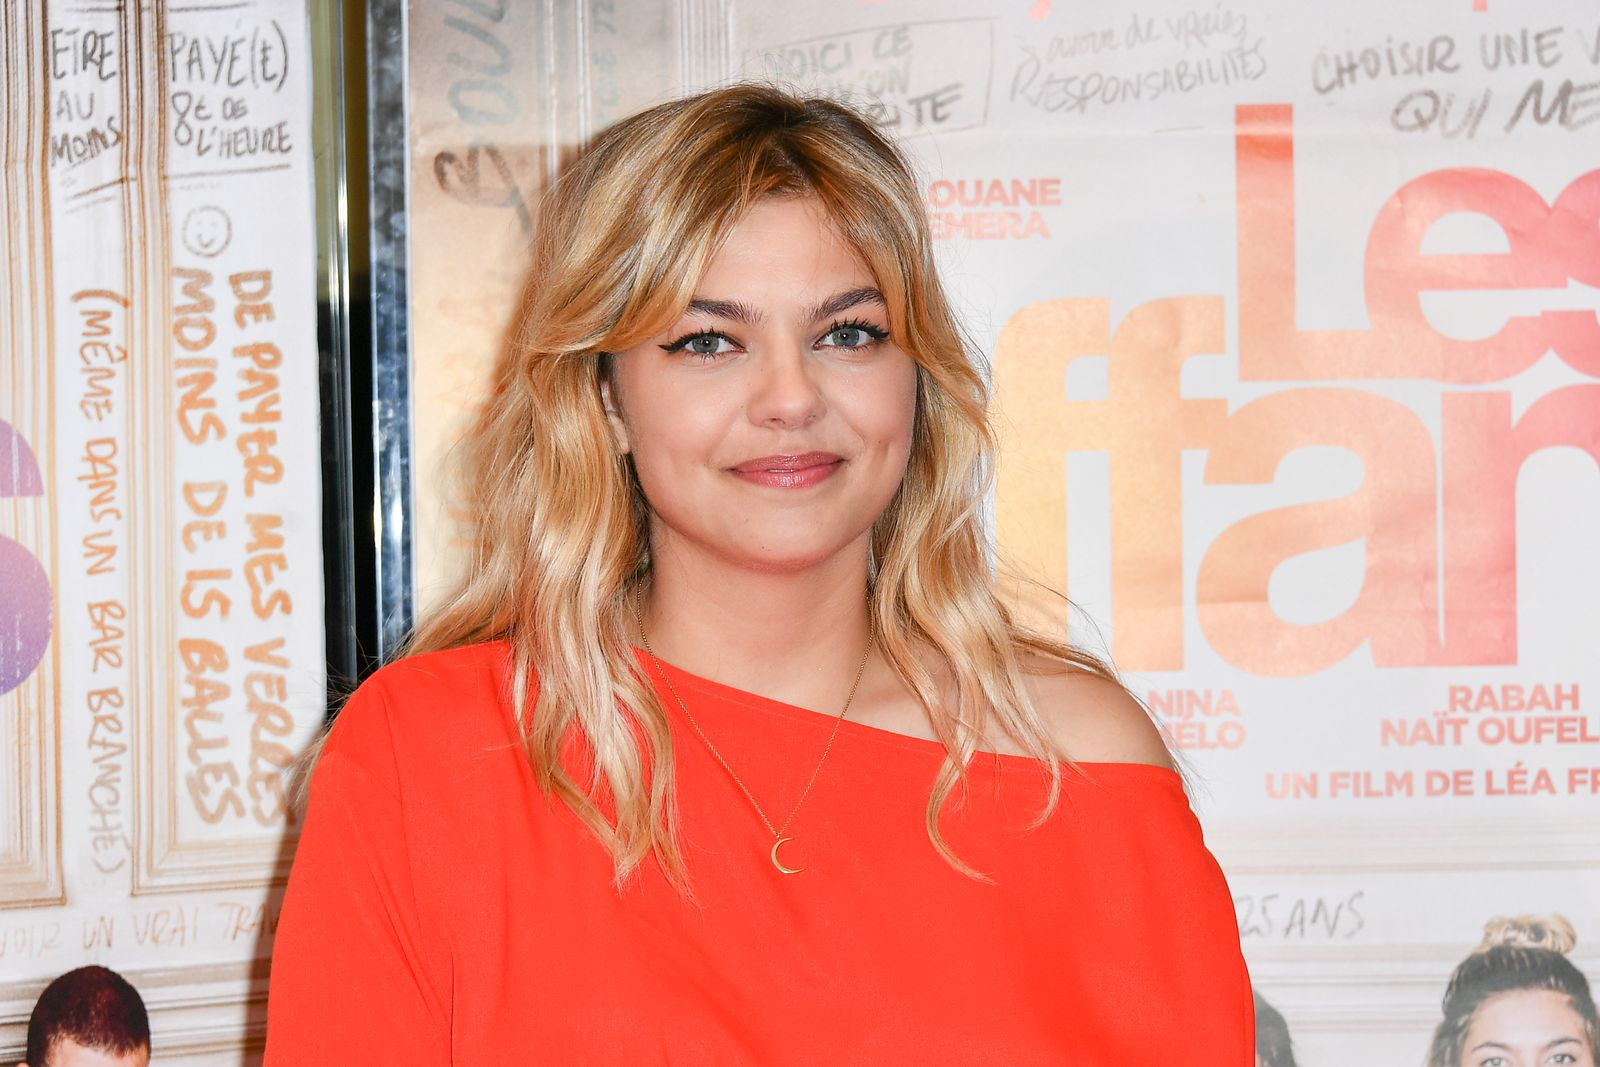 La chanteuse Louane | Photo : Getty Images